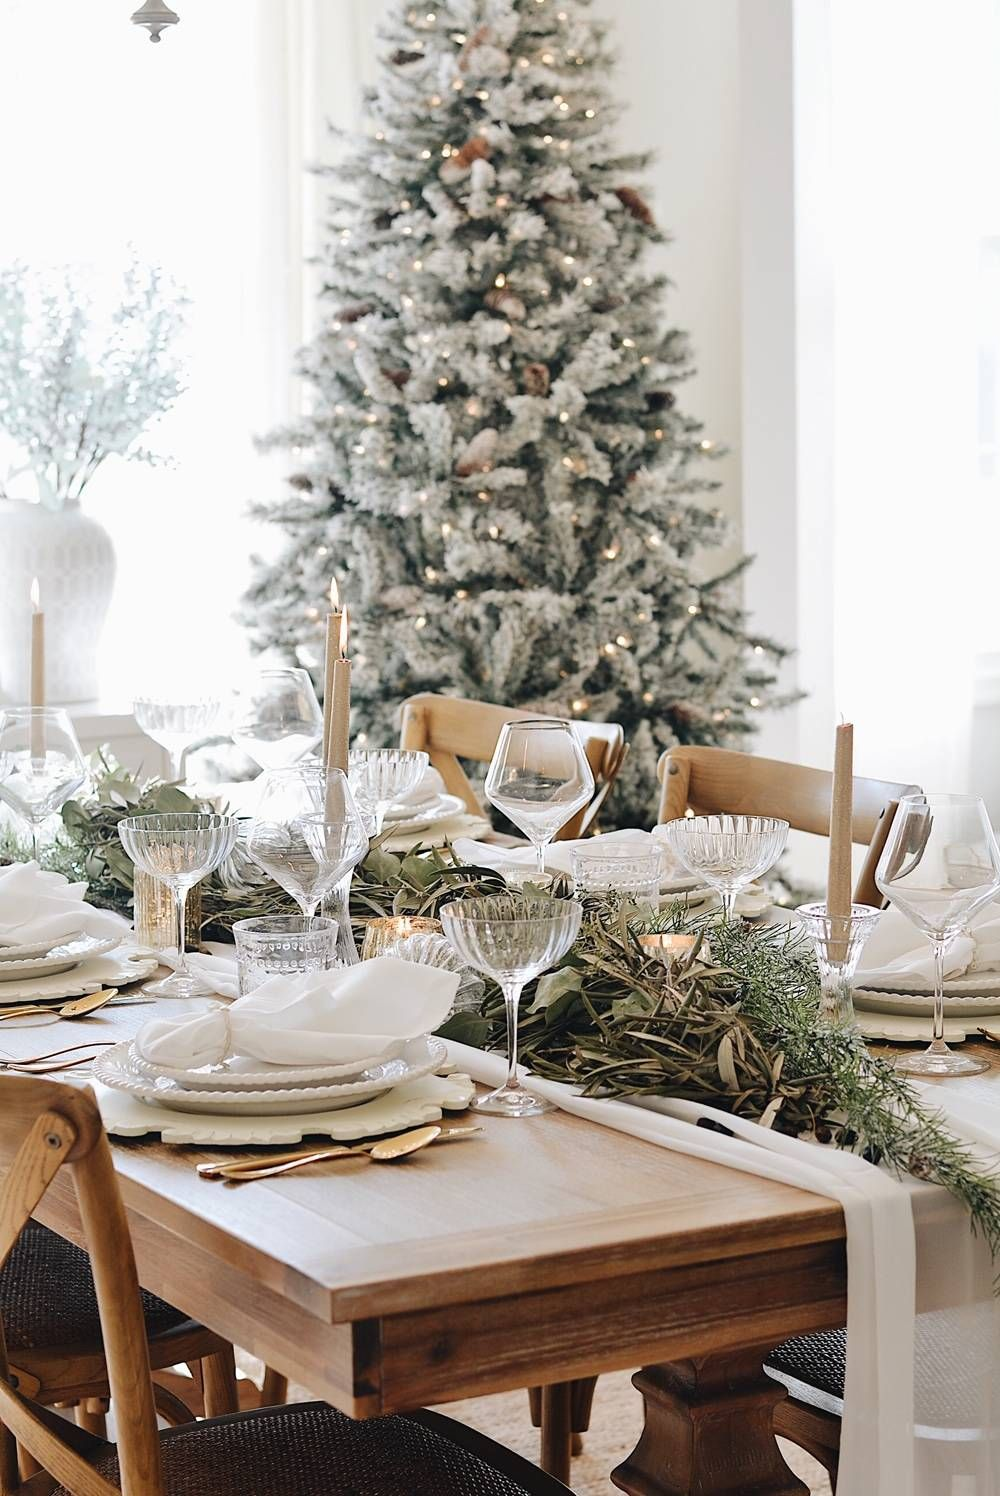 How To Create A Simple Christmas Tablescape The Pink Dream Christmas Table Centerpieces Elegant Christmas Decor Simple Christmas Decor